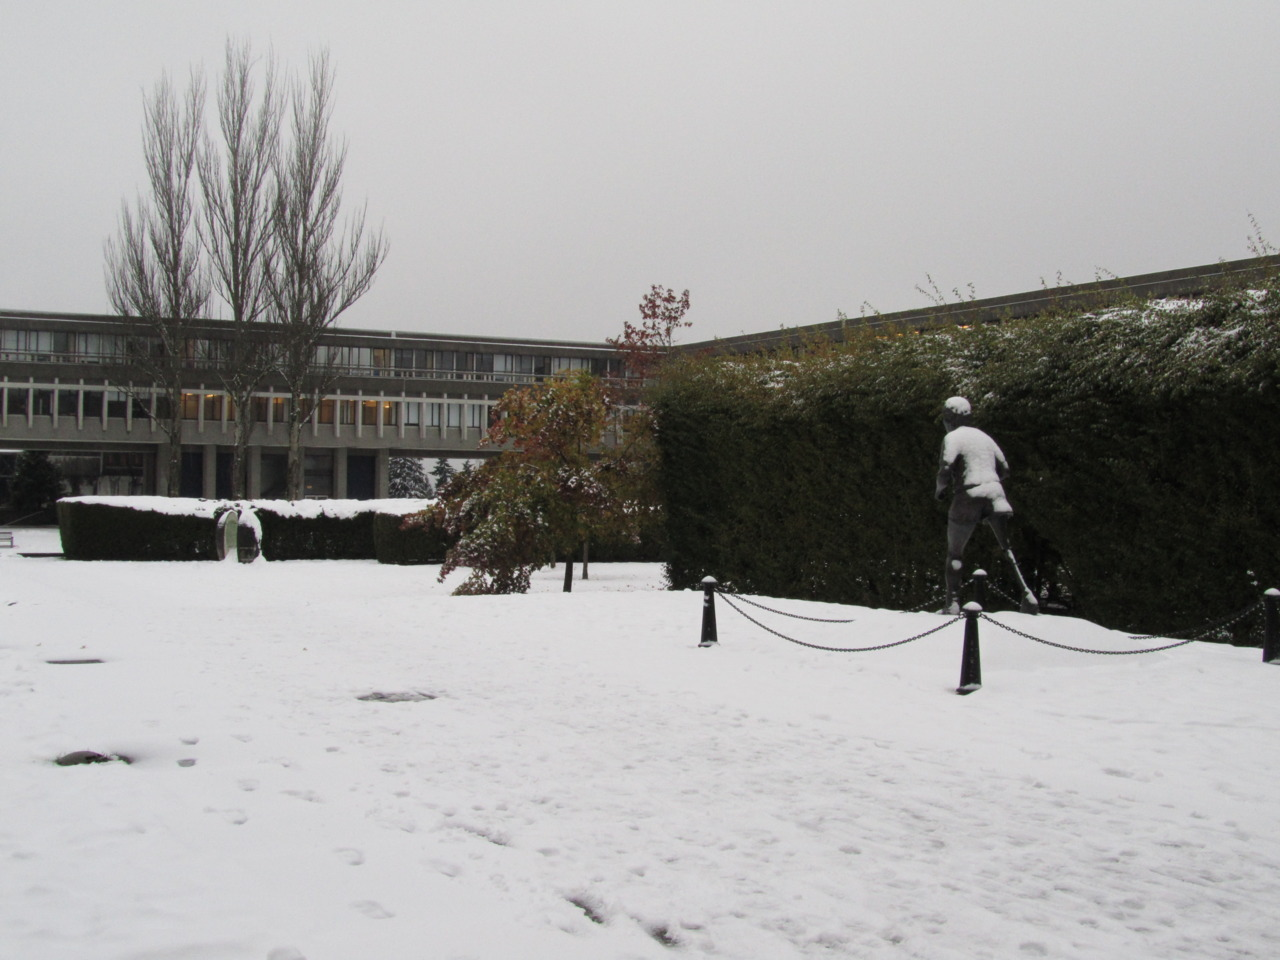 Yeh, there was snow up at SFU a few days ago… Terry Fox was runnin in it.